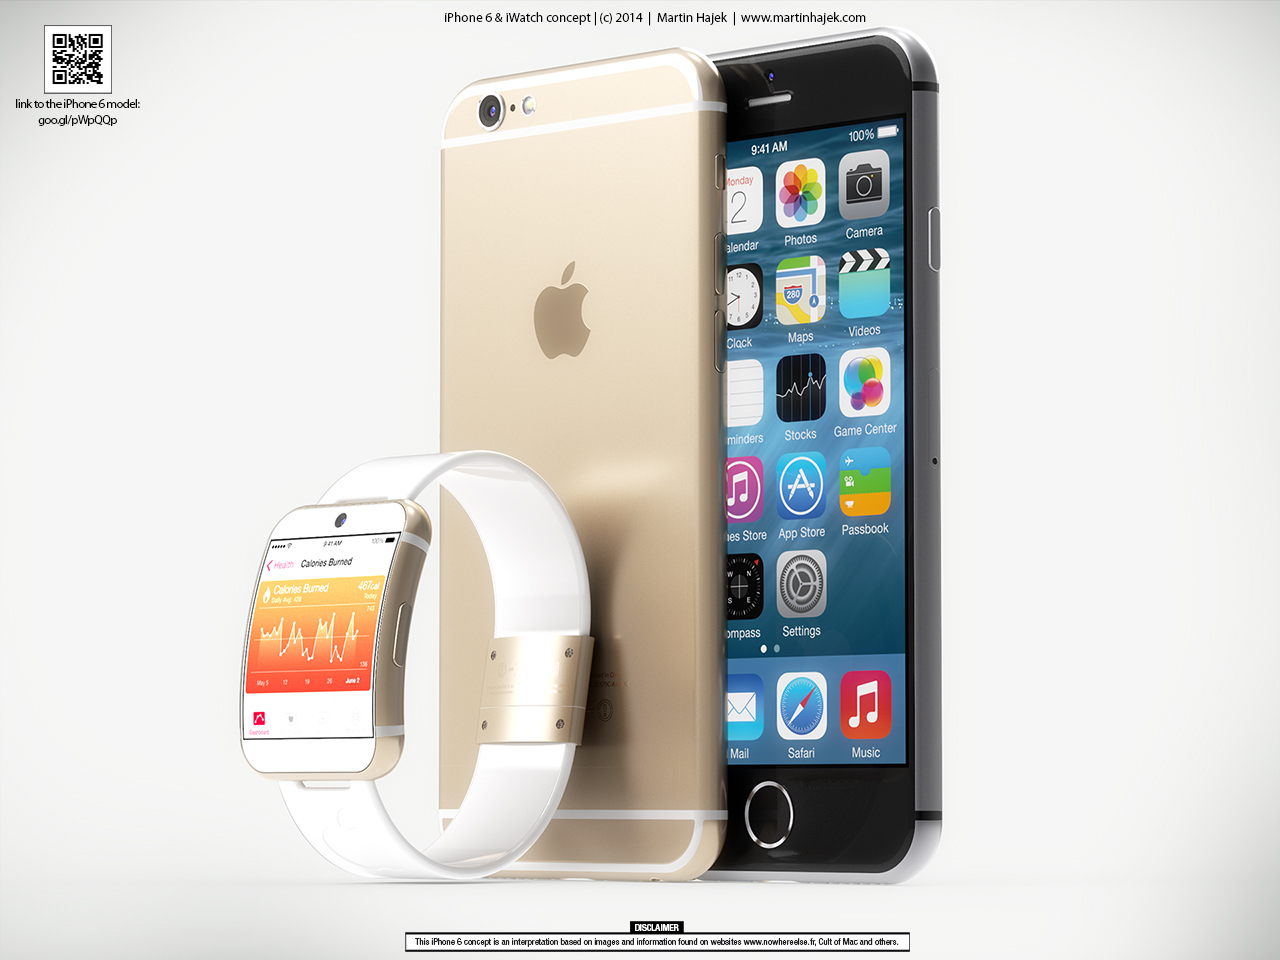 iphone6_iwatch_konzept6